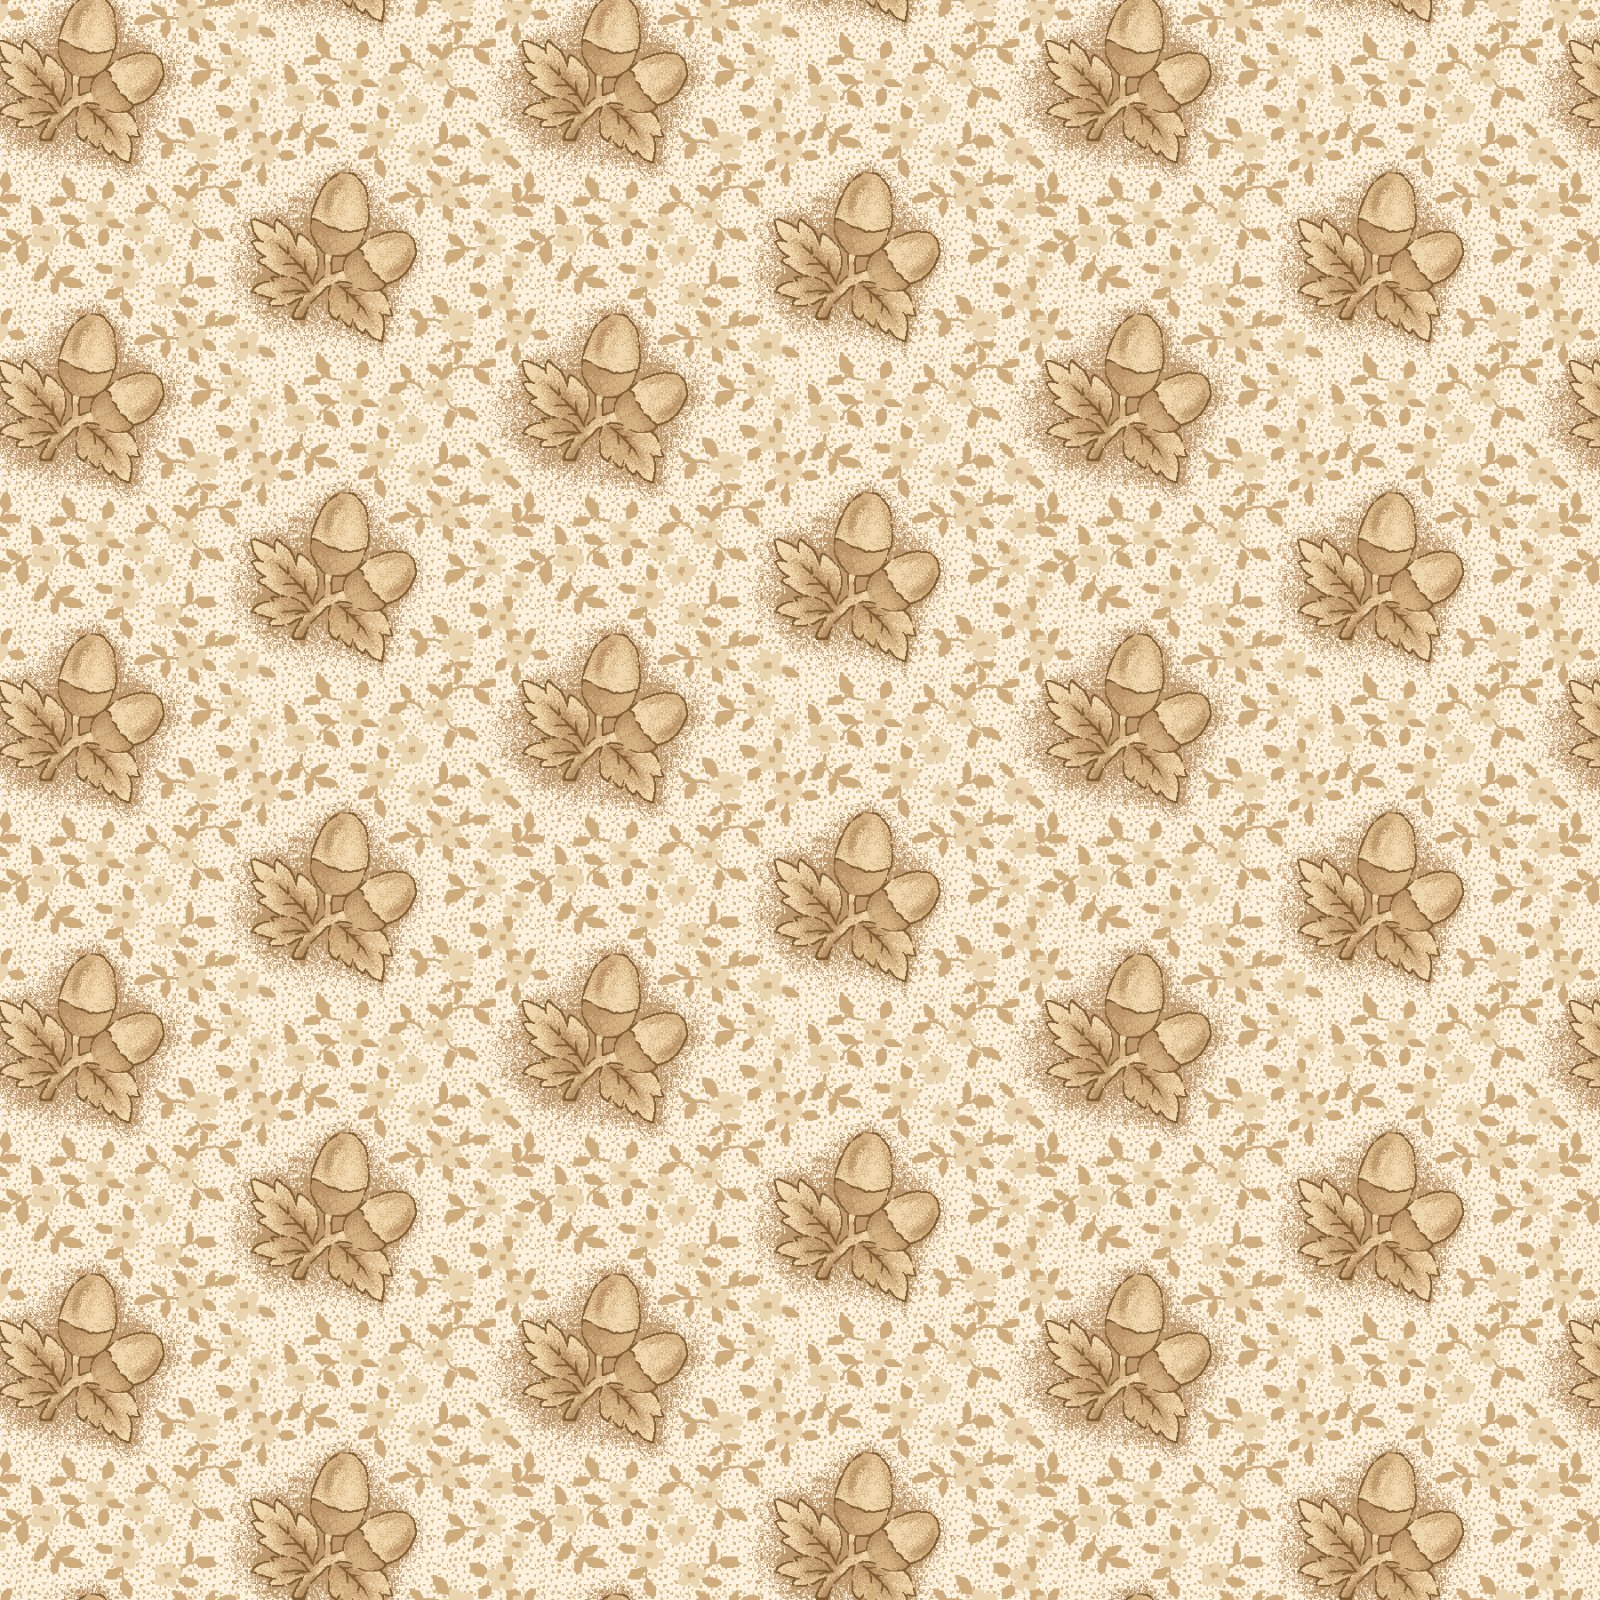 Buttermilk Autumn - 2277-33 * 1/2 yard